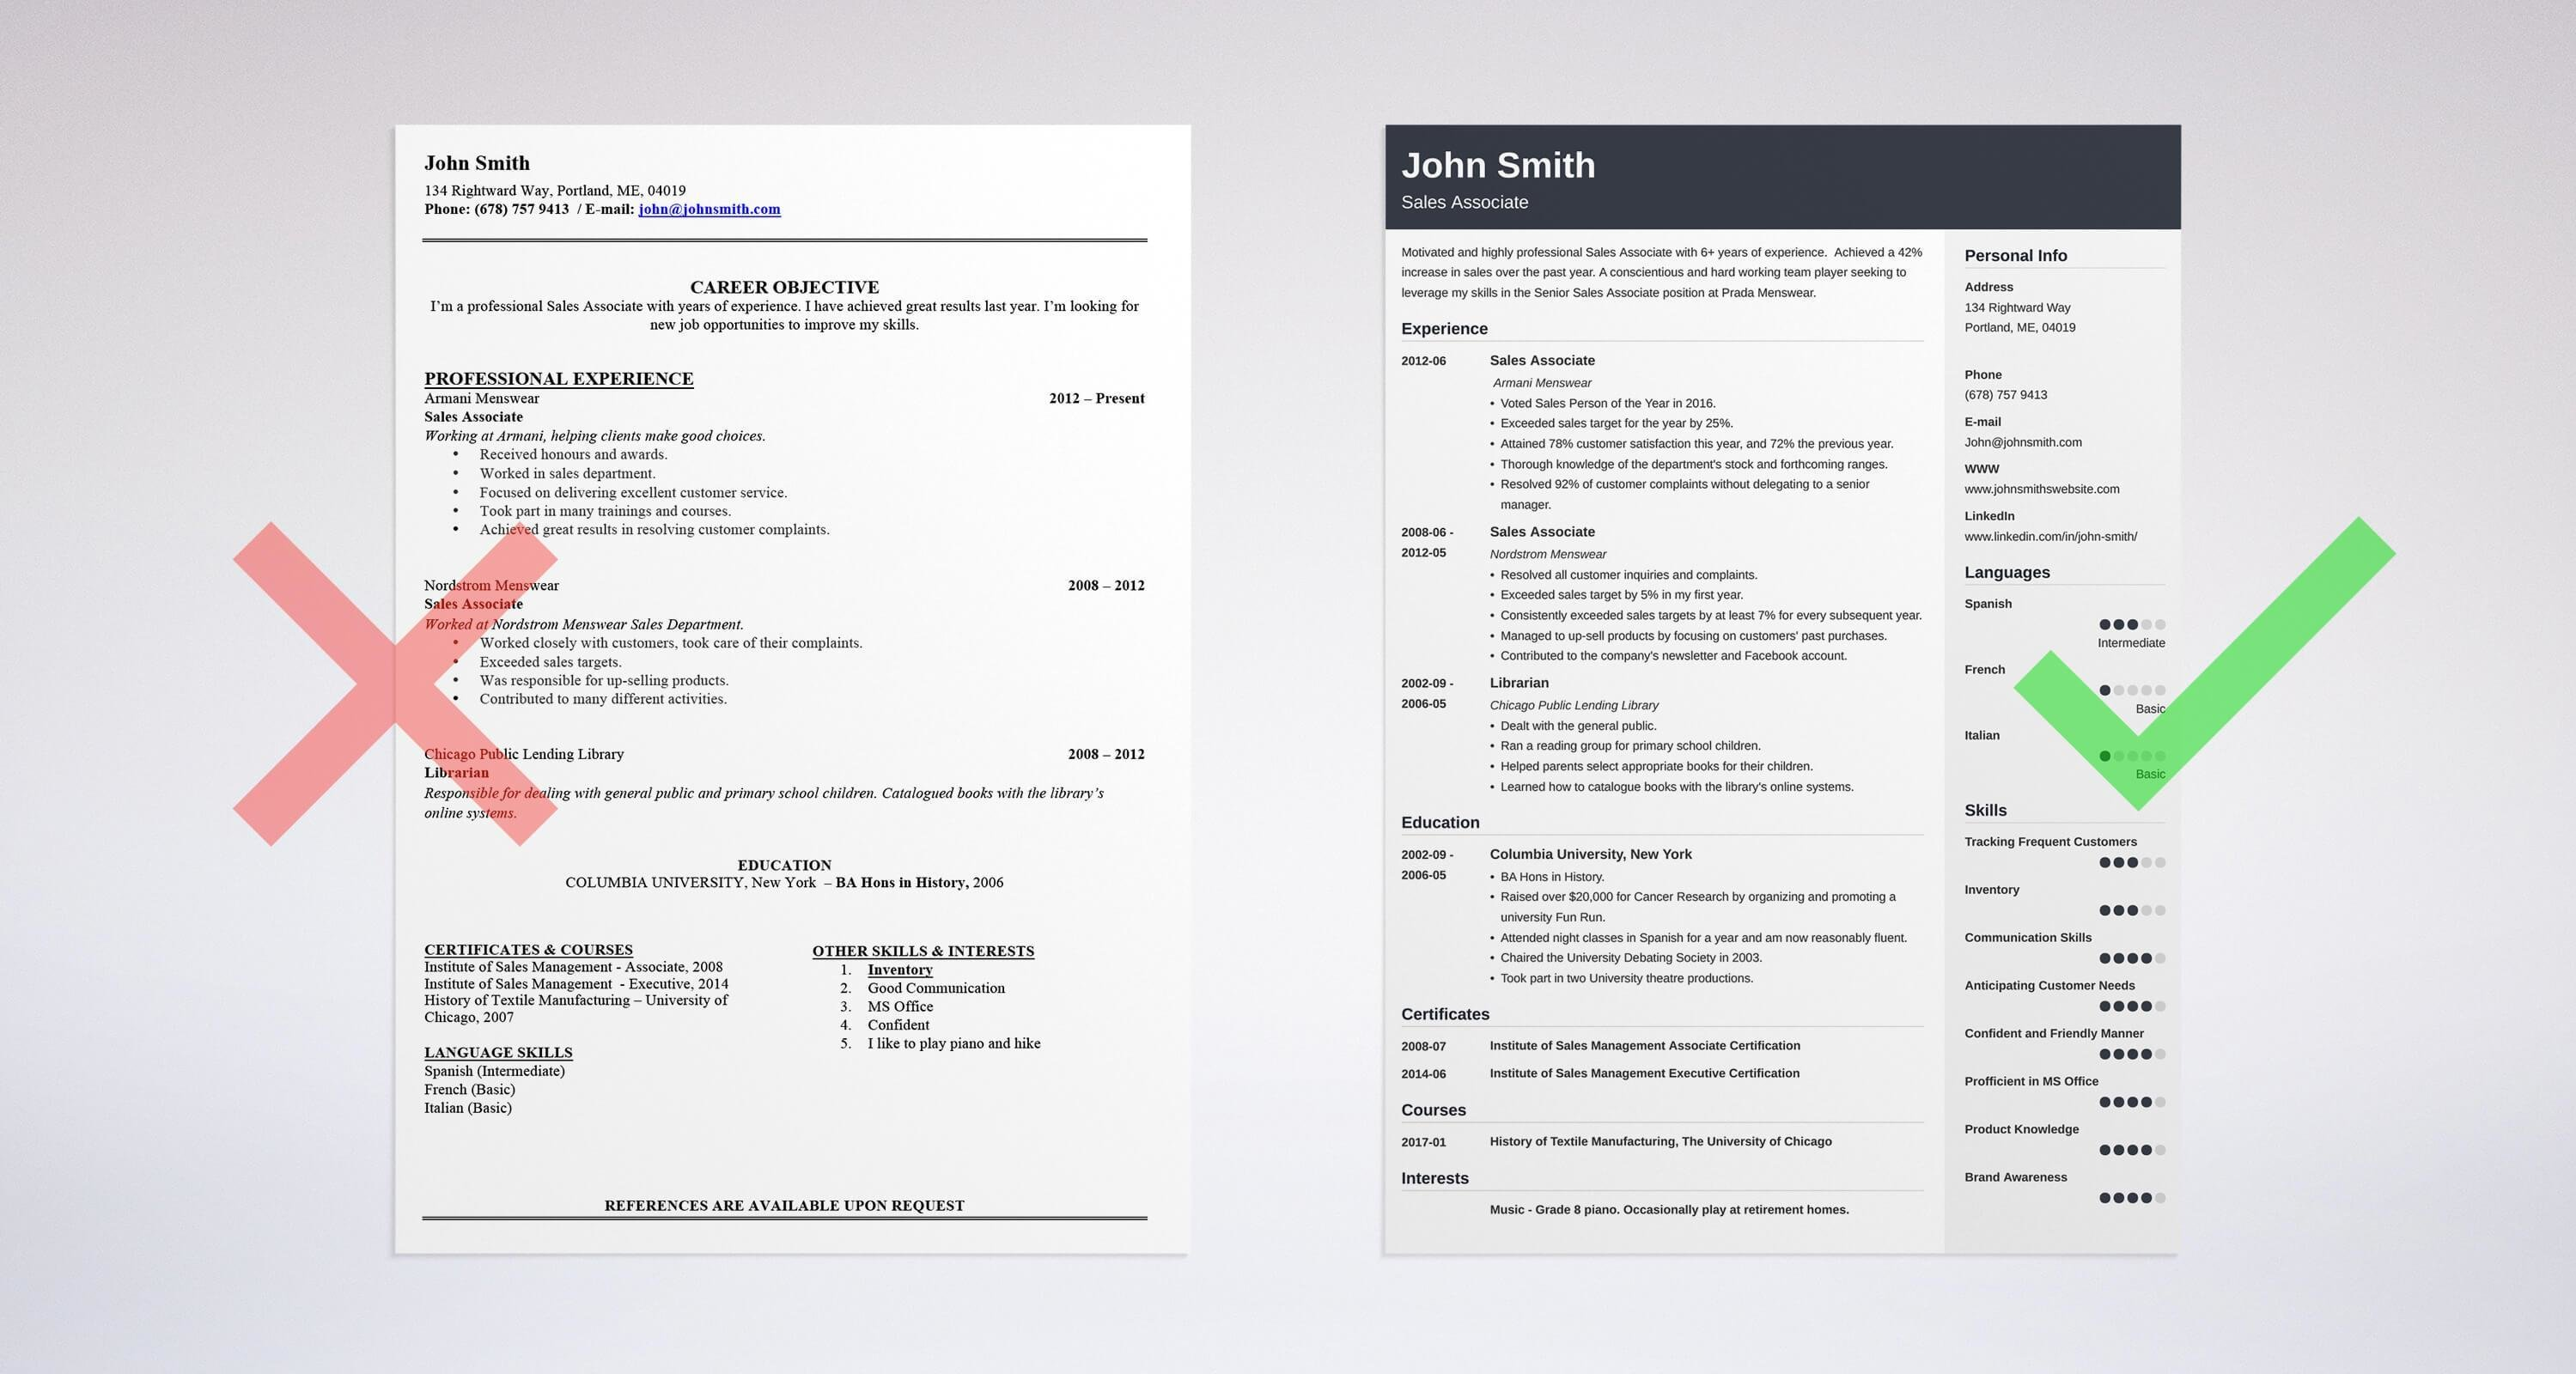 professional resume with a career summary - Professional Summary Resume